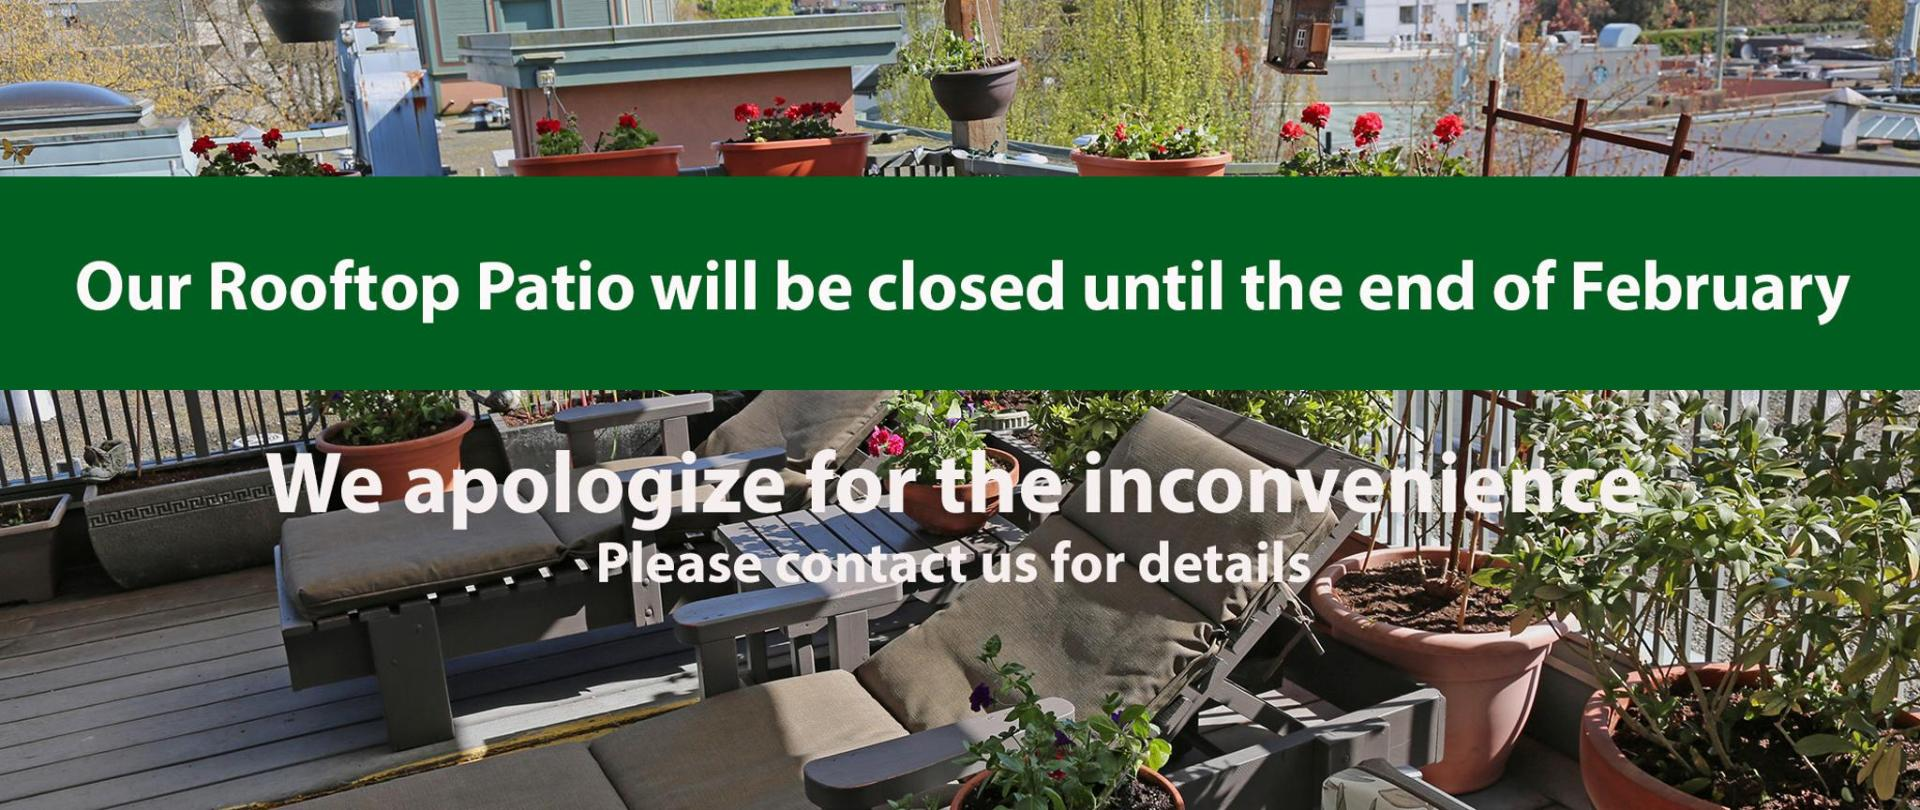 rooftop patio closure Feb 2019.jpg